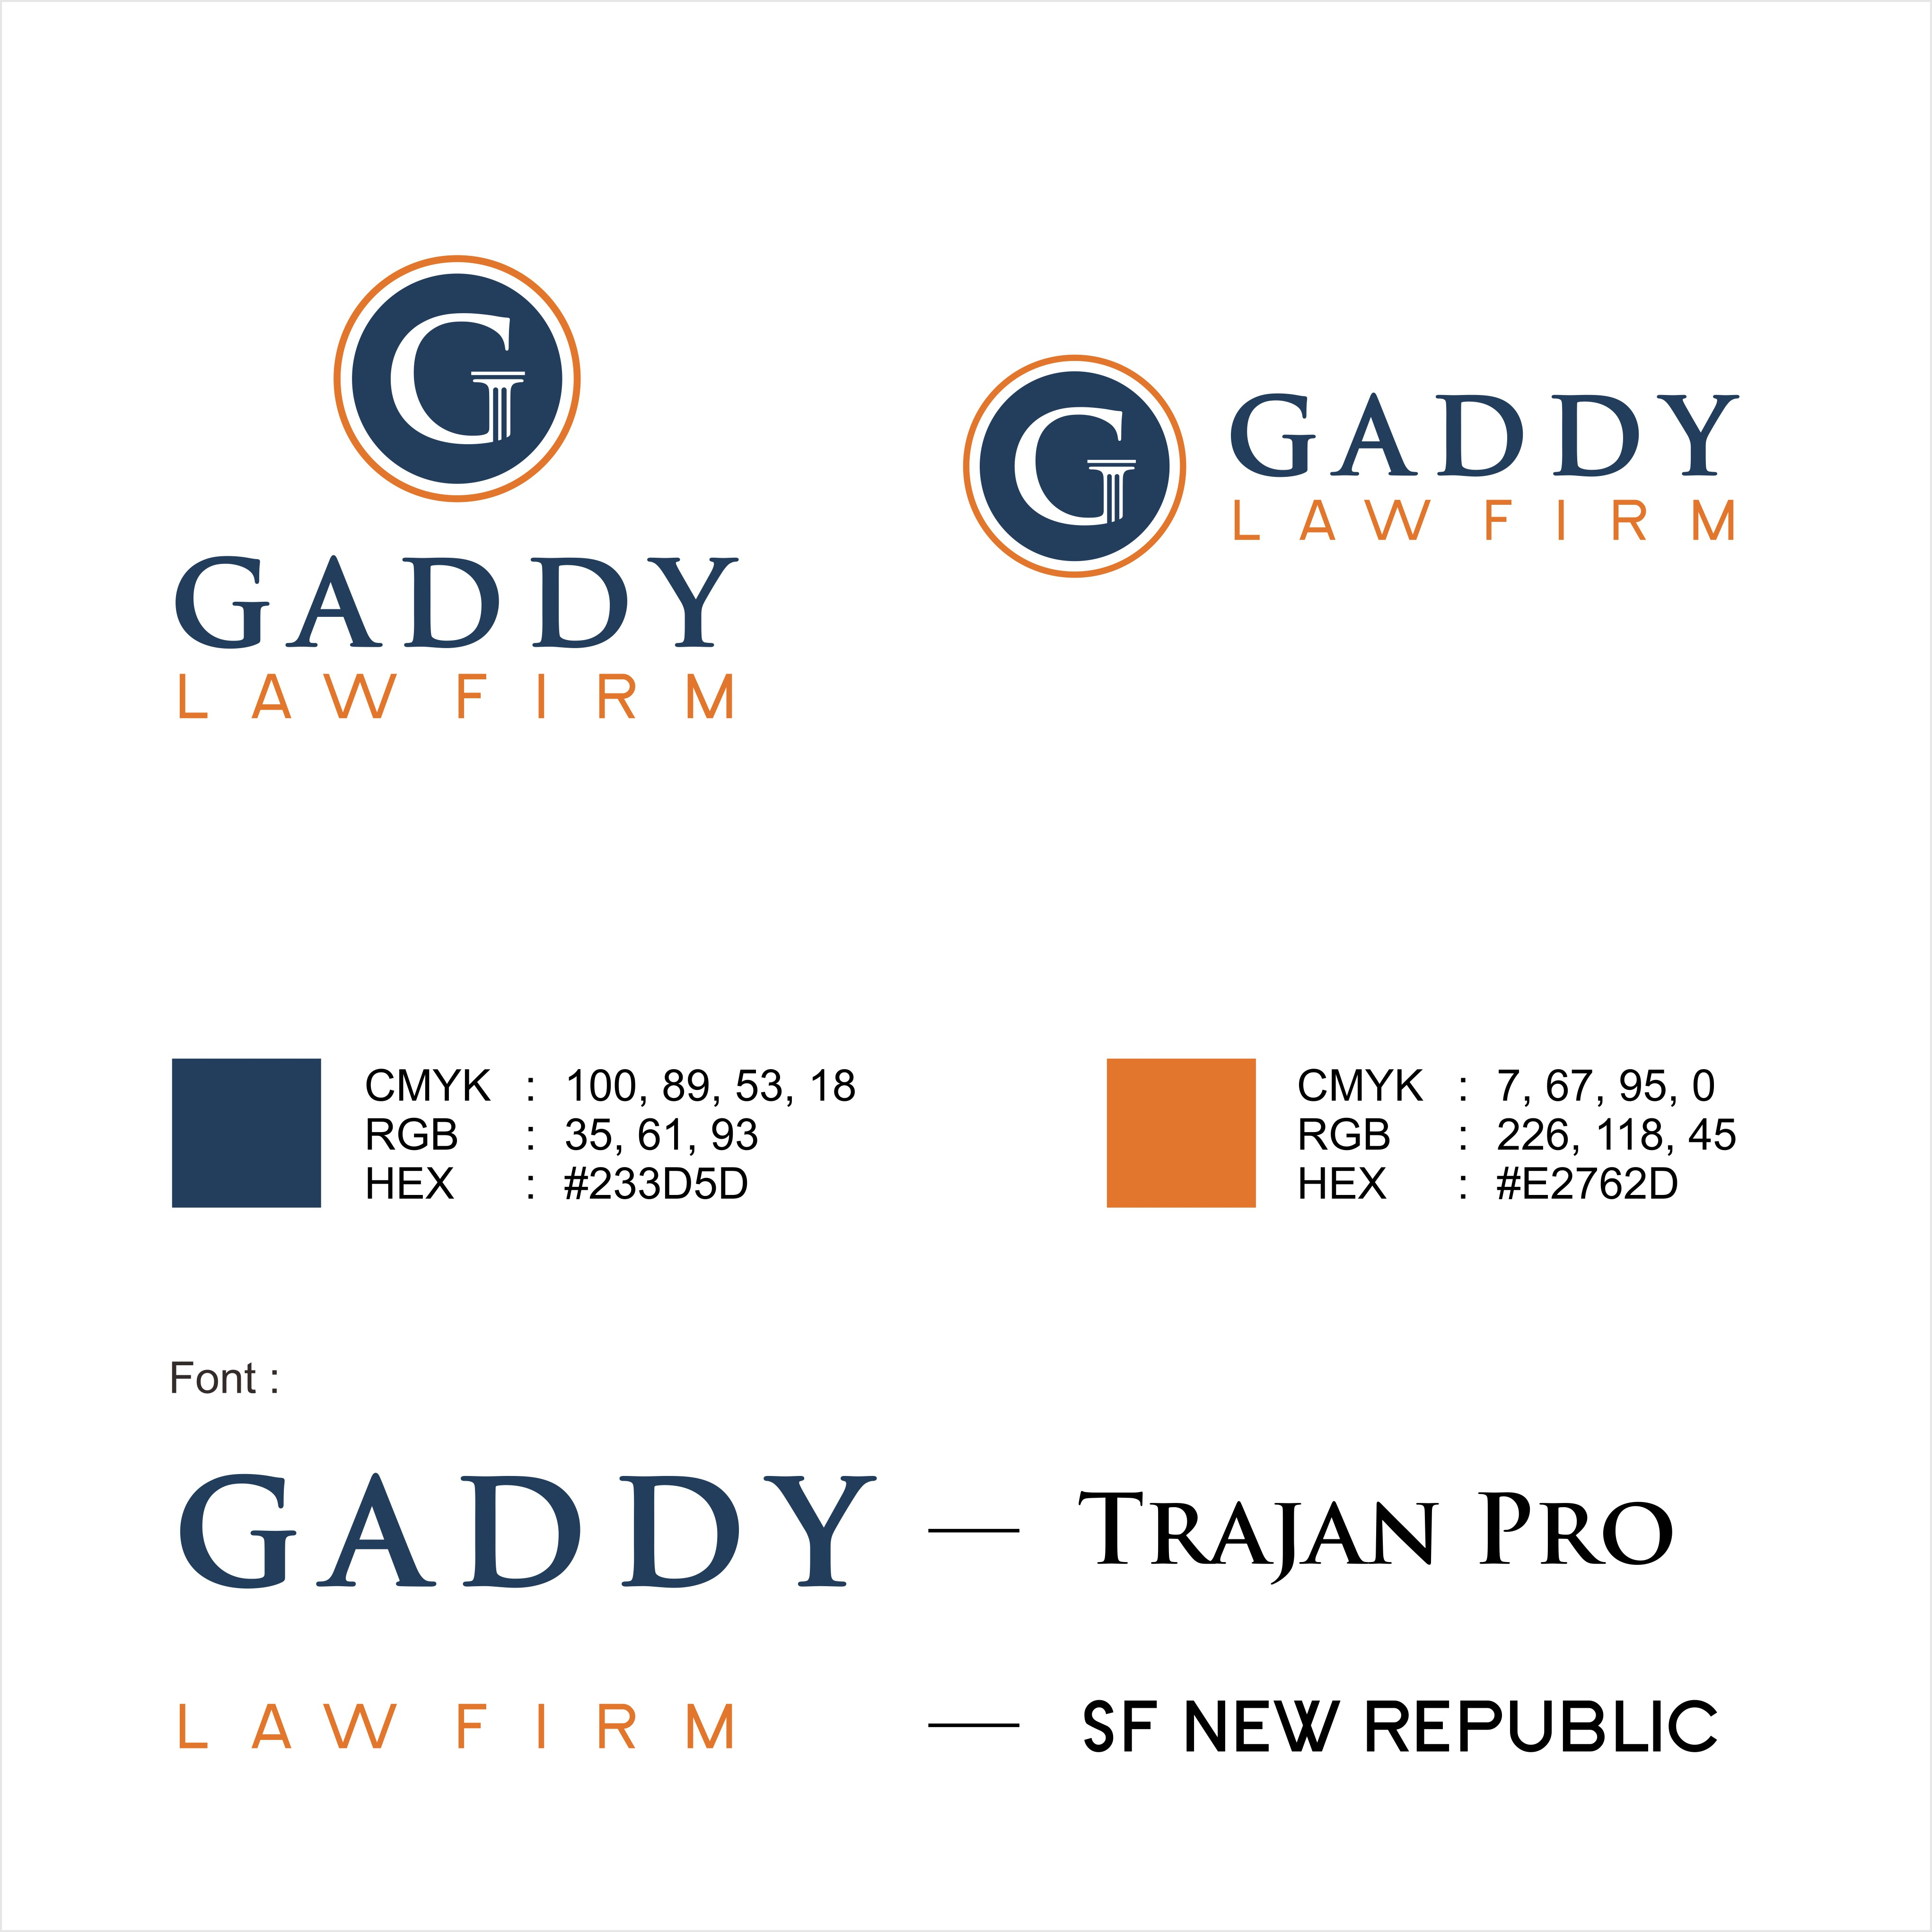 New Law Firm needs a Stand-Out Logo